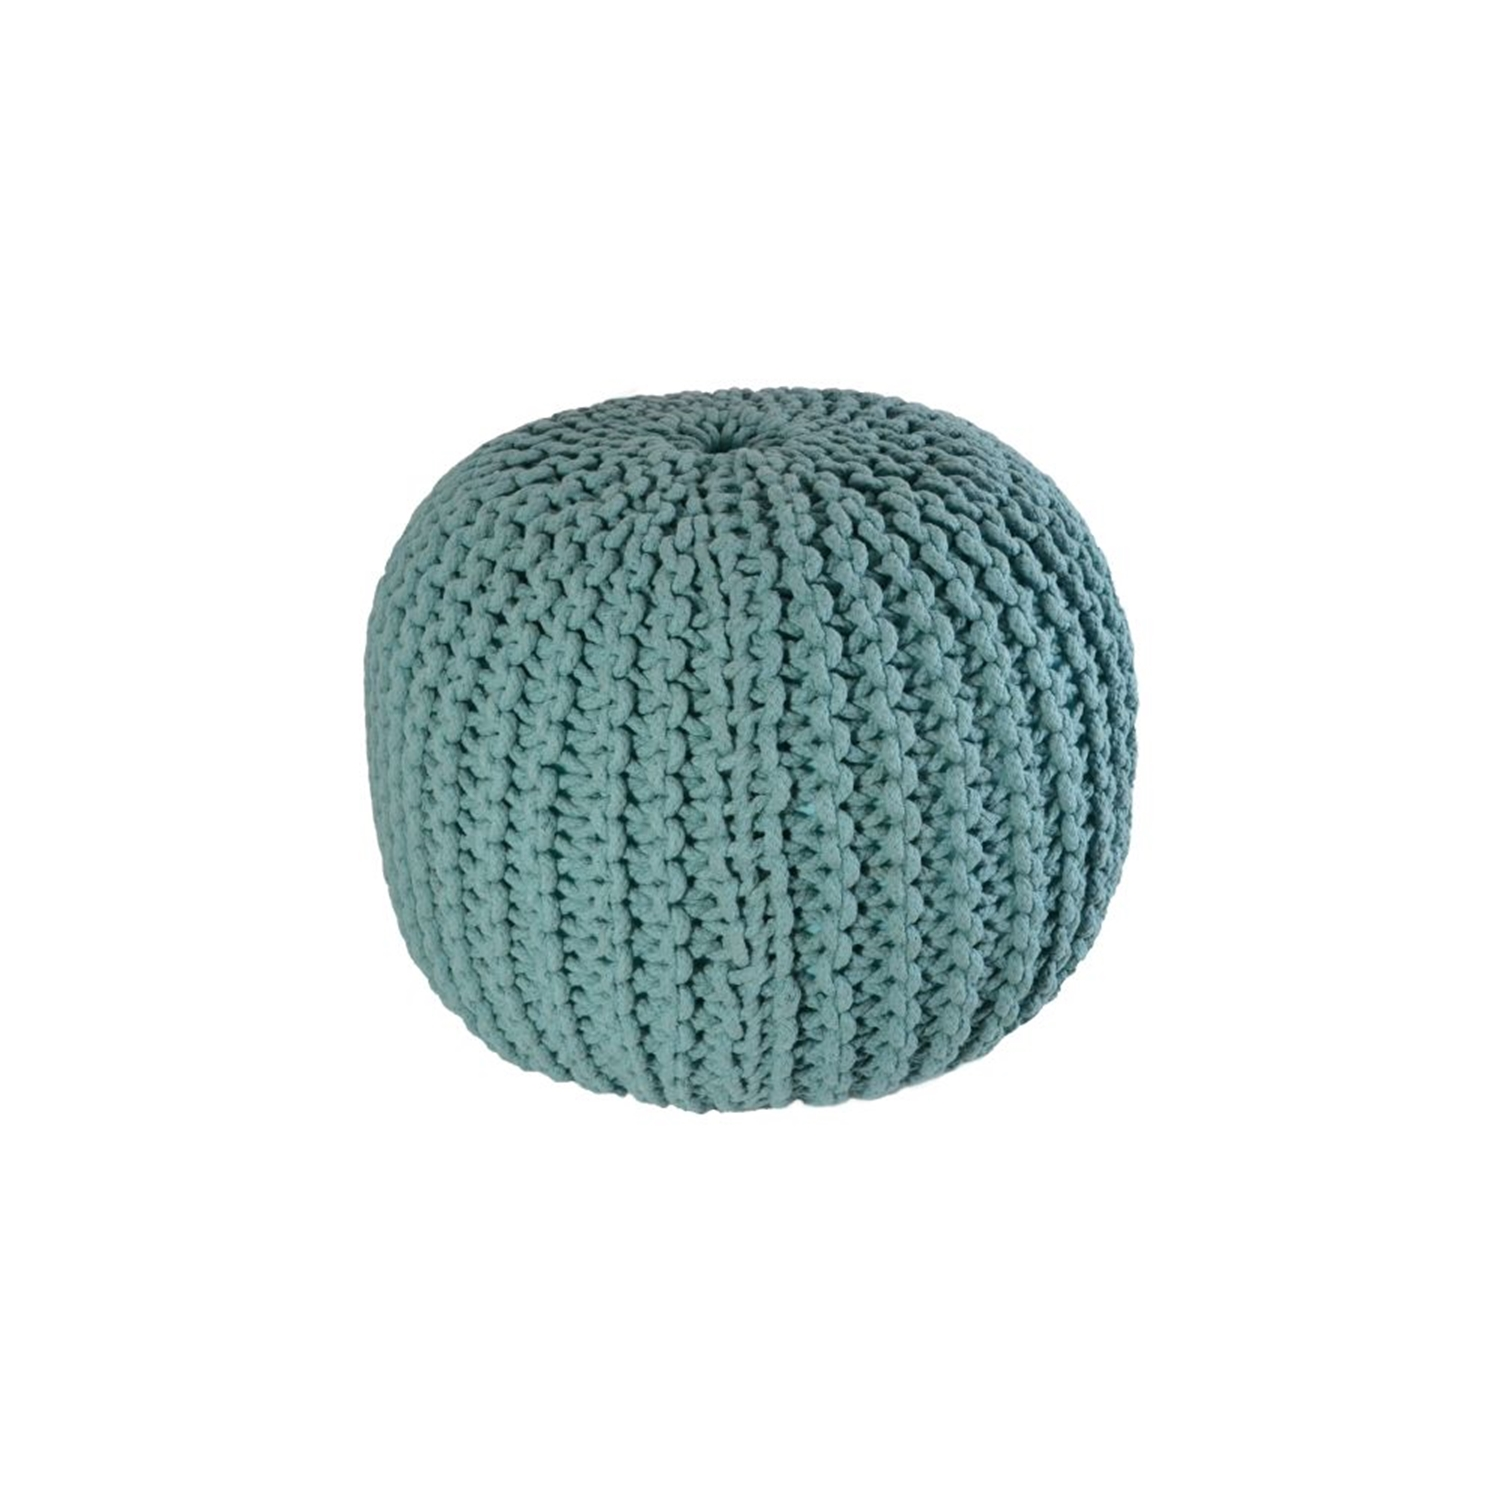 Image of Casa Knitted Pouffe